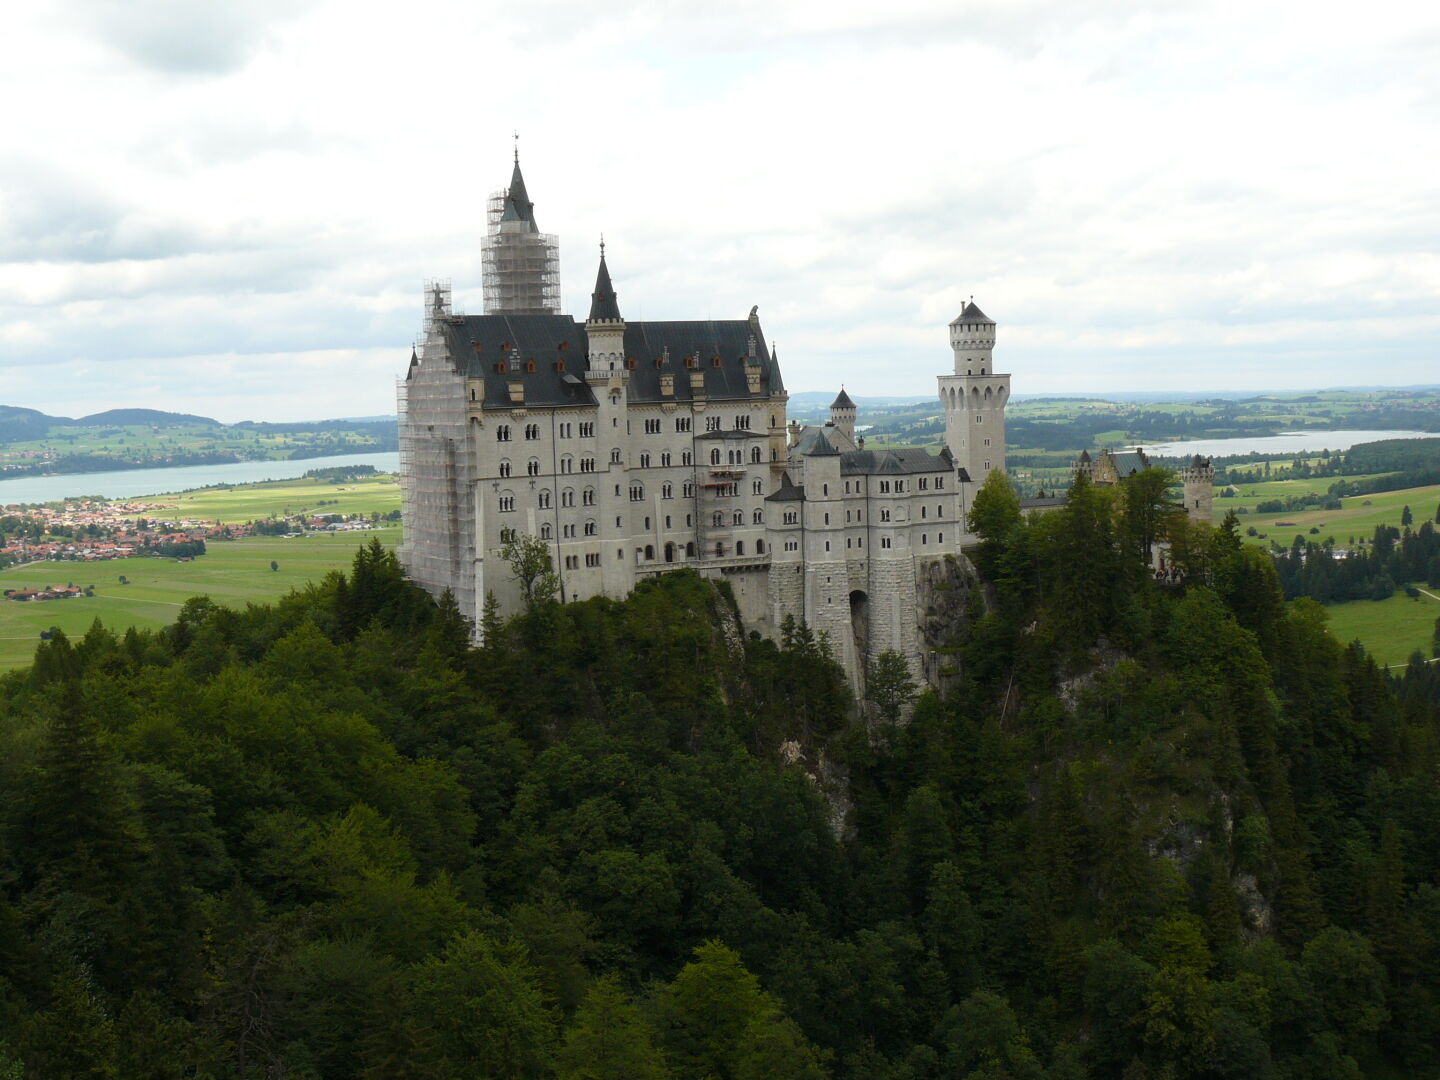 And looking back towards Neuschwanstein while on the path towards the Tegelberg.